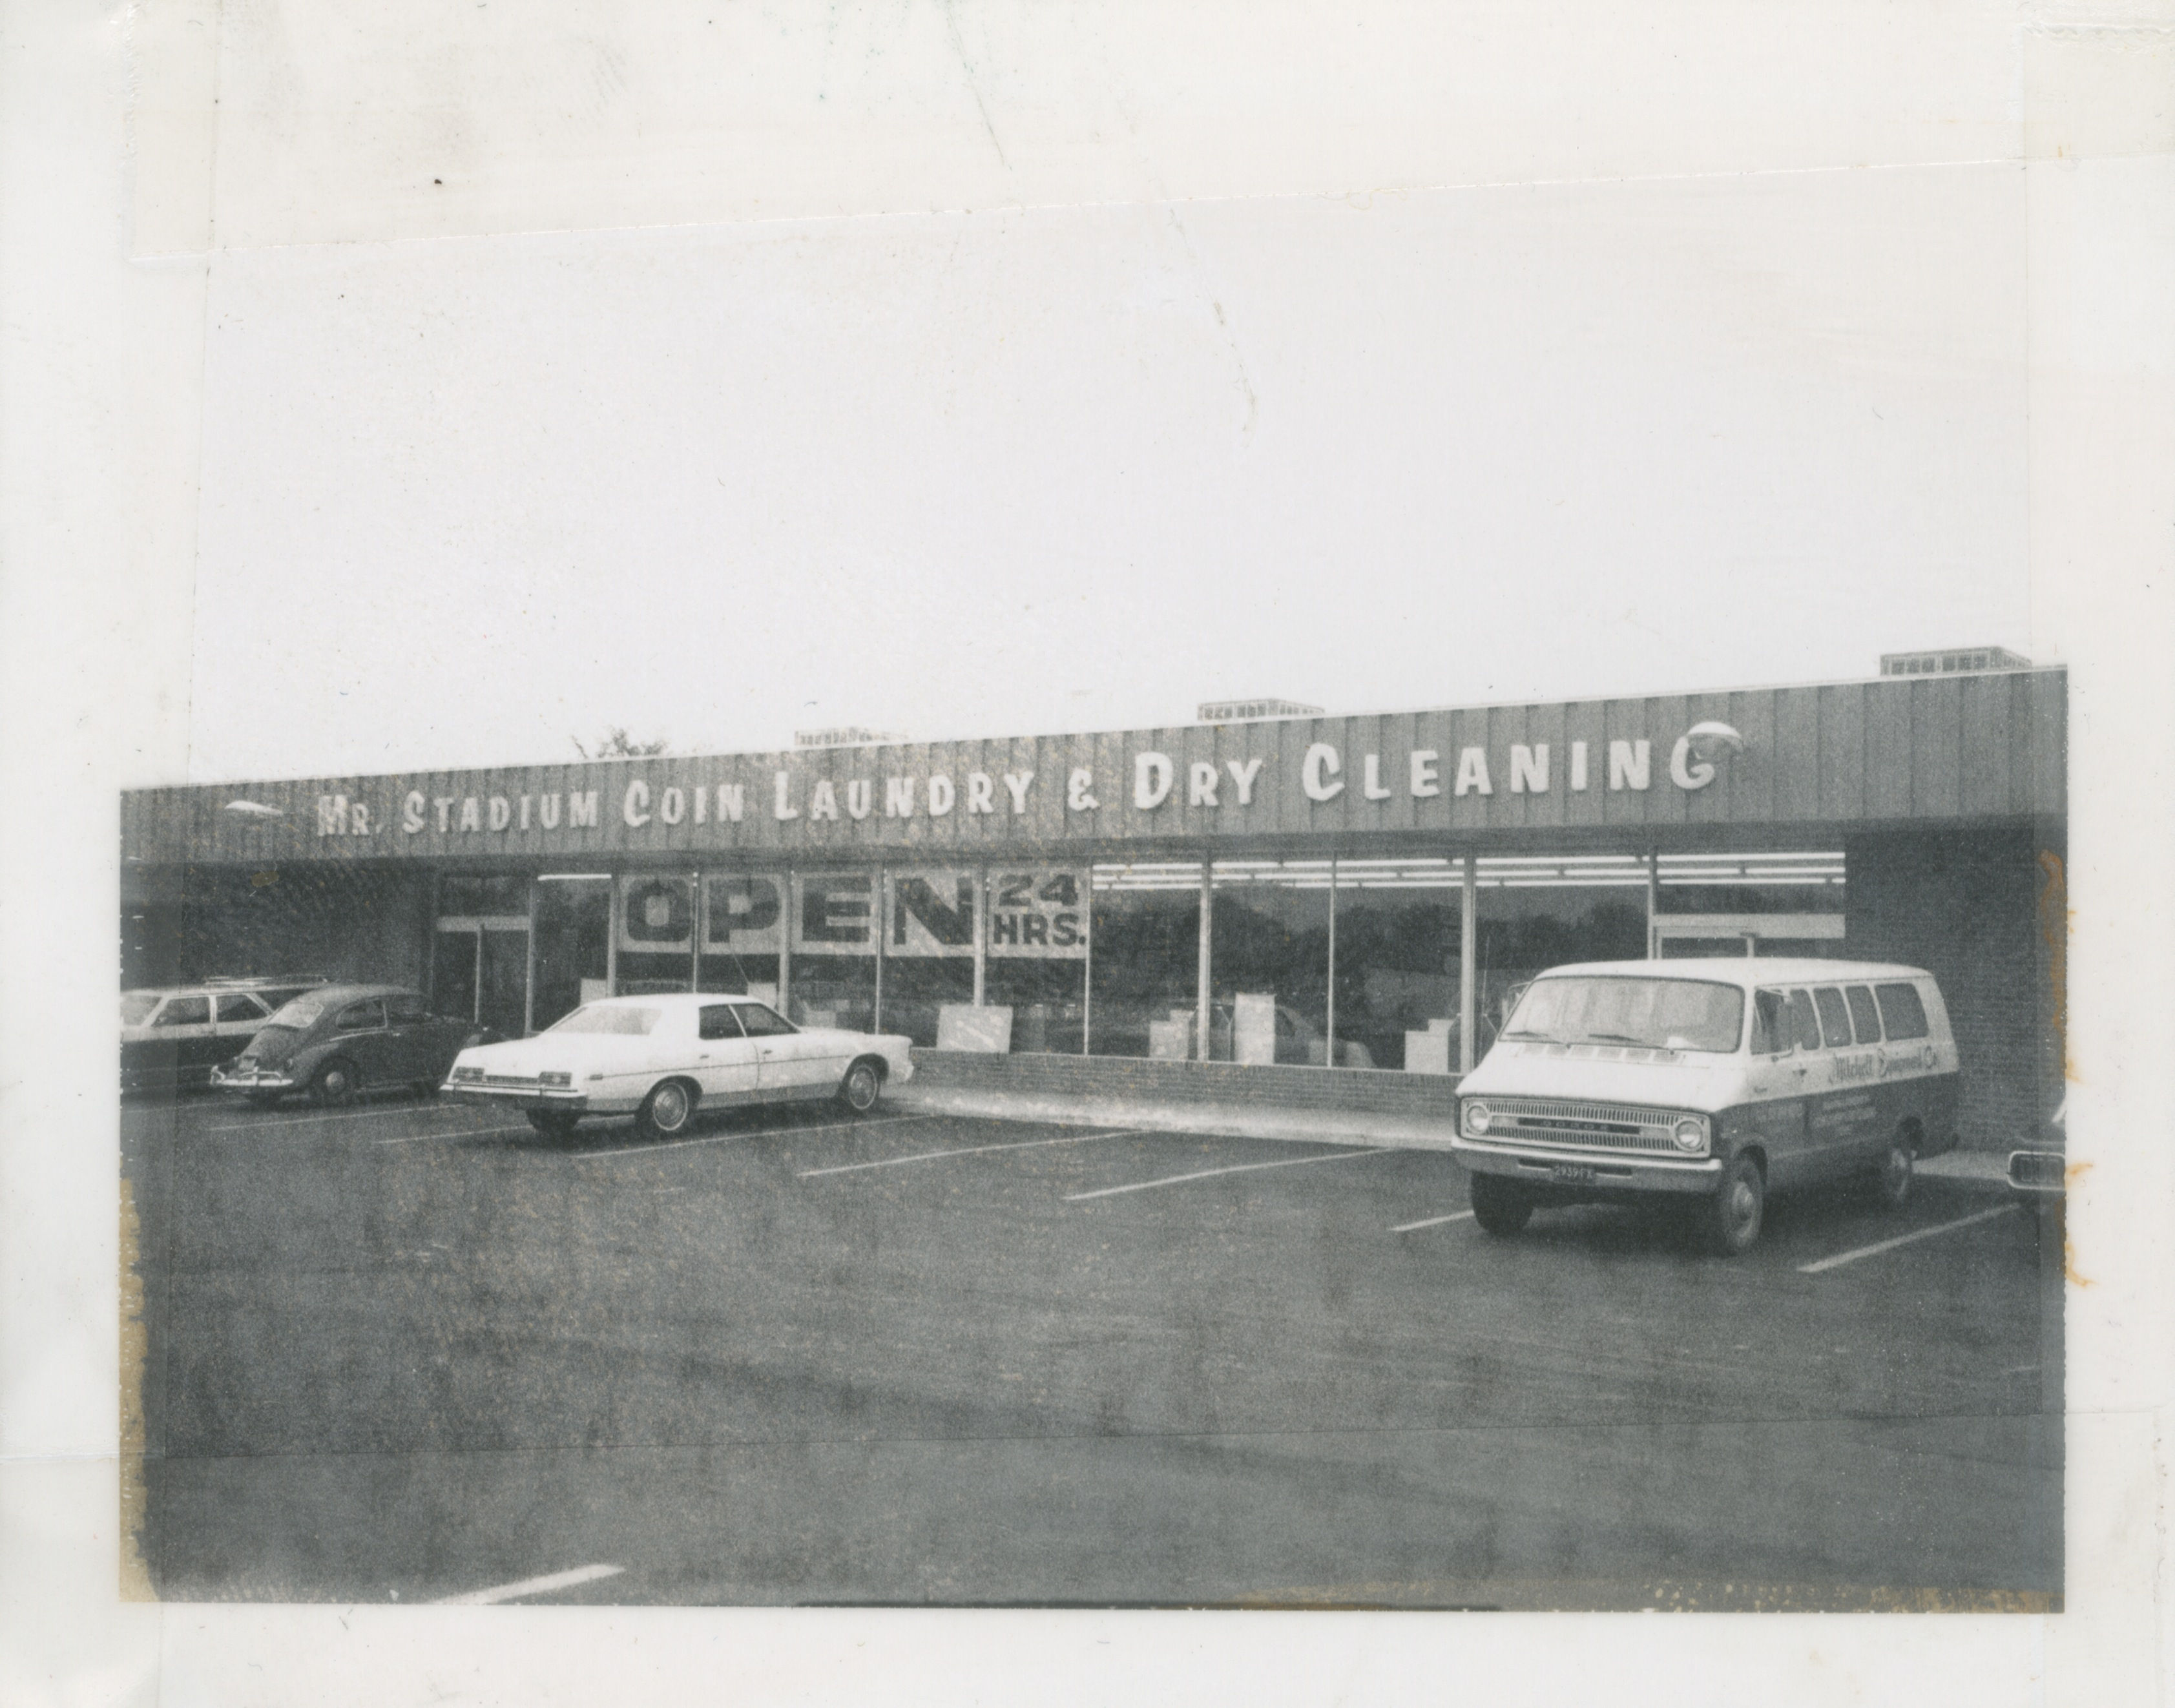 Mr. Stadium Coin Laundry, 1972 image